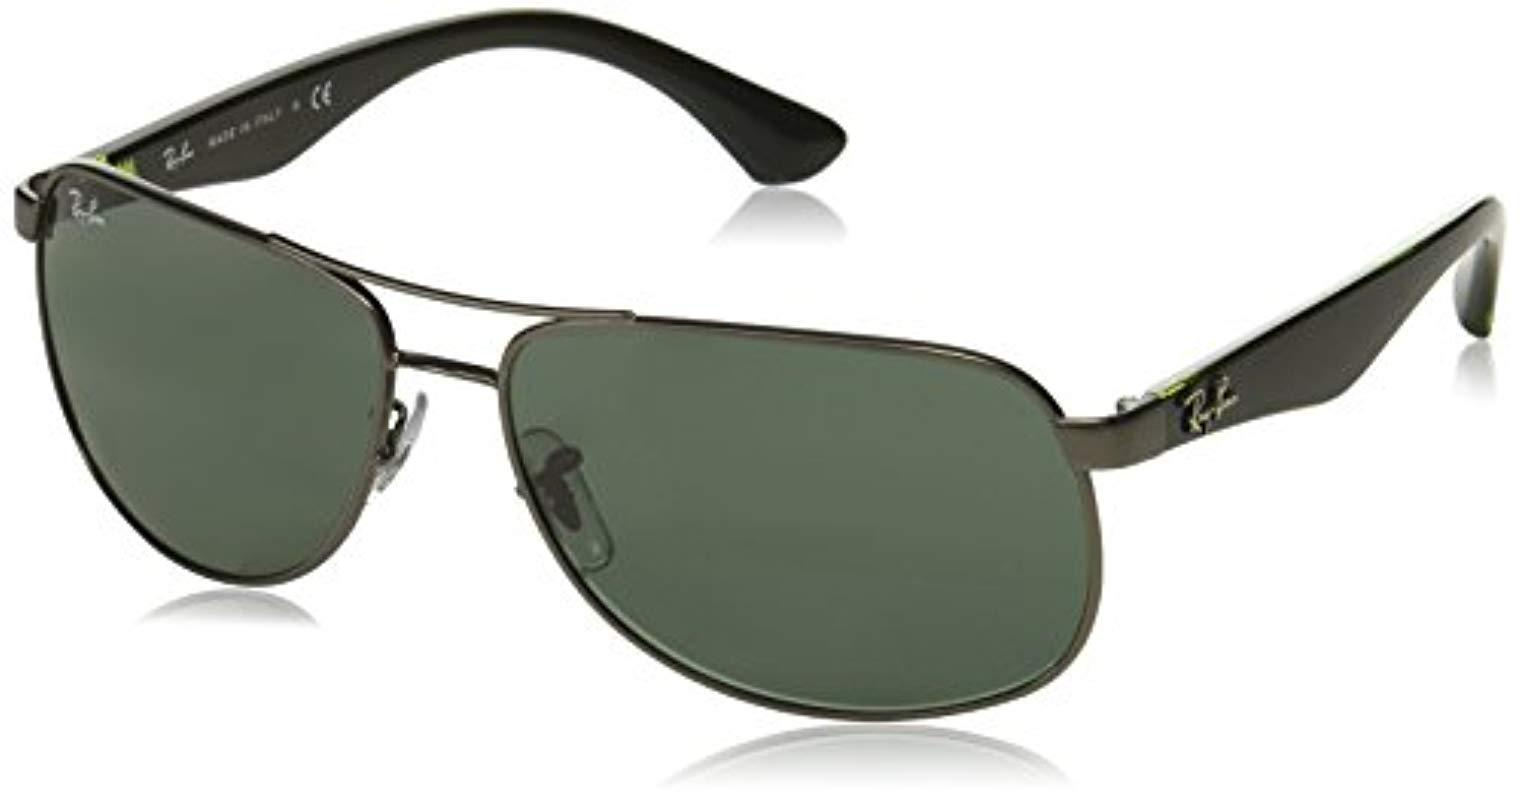 4103f275b8 Lyst - Ray-Ban Orb3502 029 8561 Aviator Sunglasses for Men - Save 5%